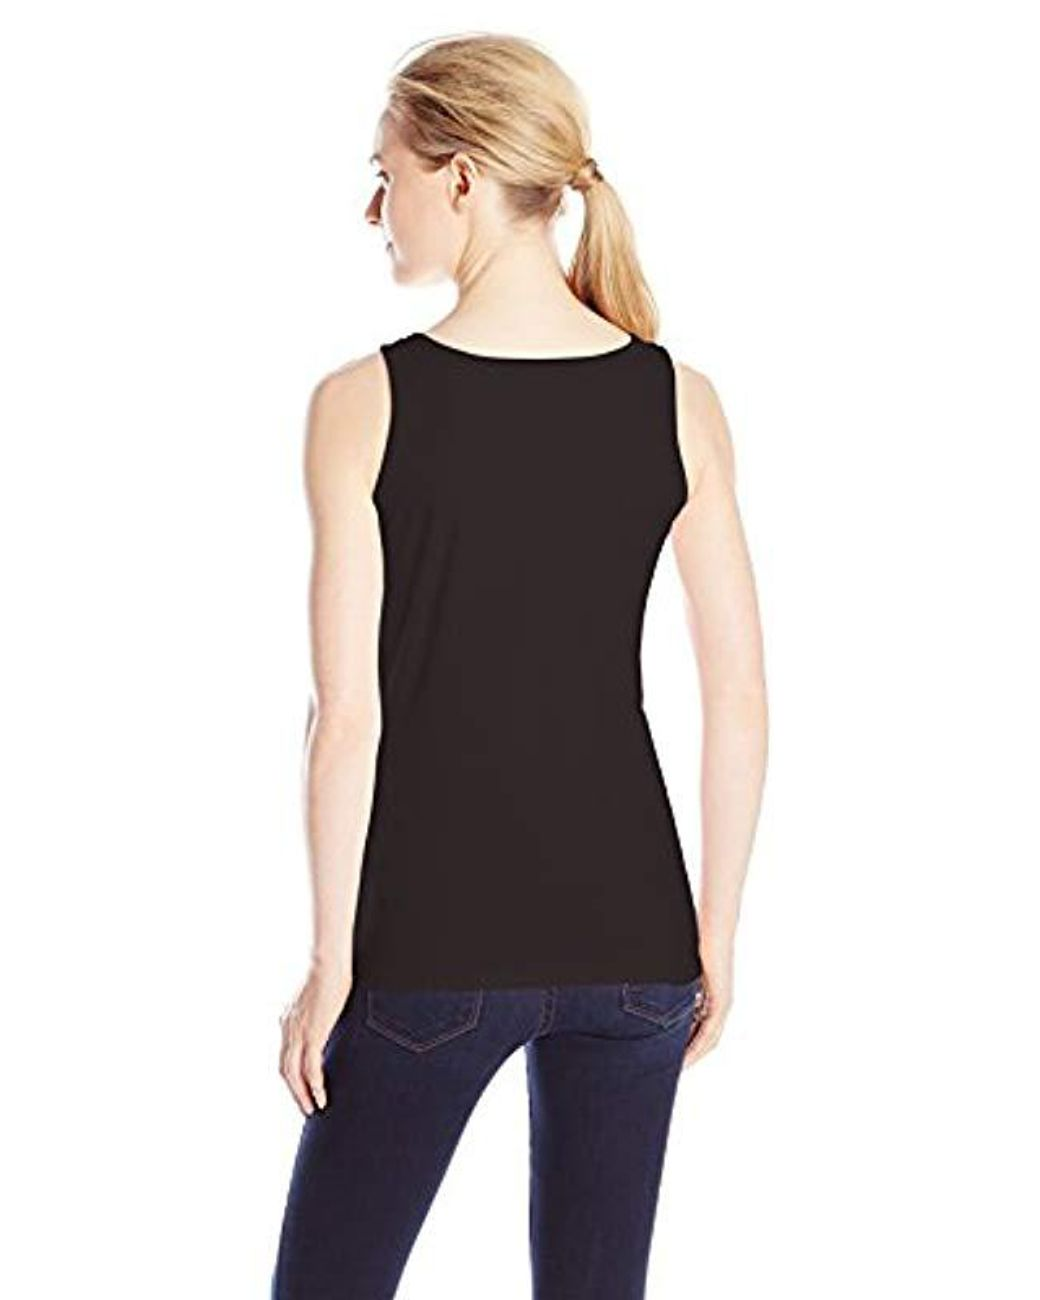 Hanes Cotton L  Jersey Scoop  Neck Wide Strap Graphic Tank Top Orchard